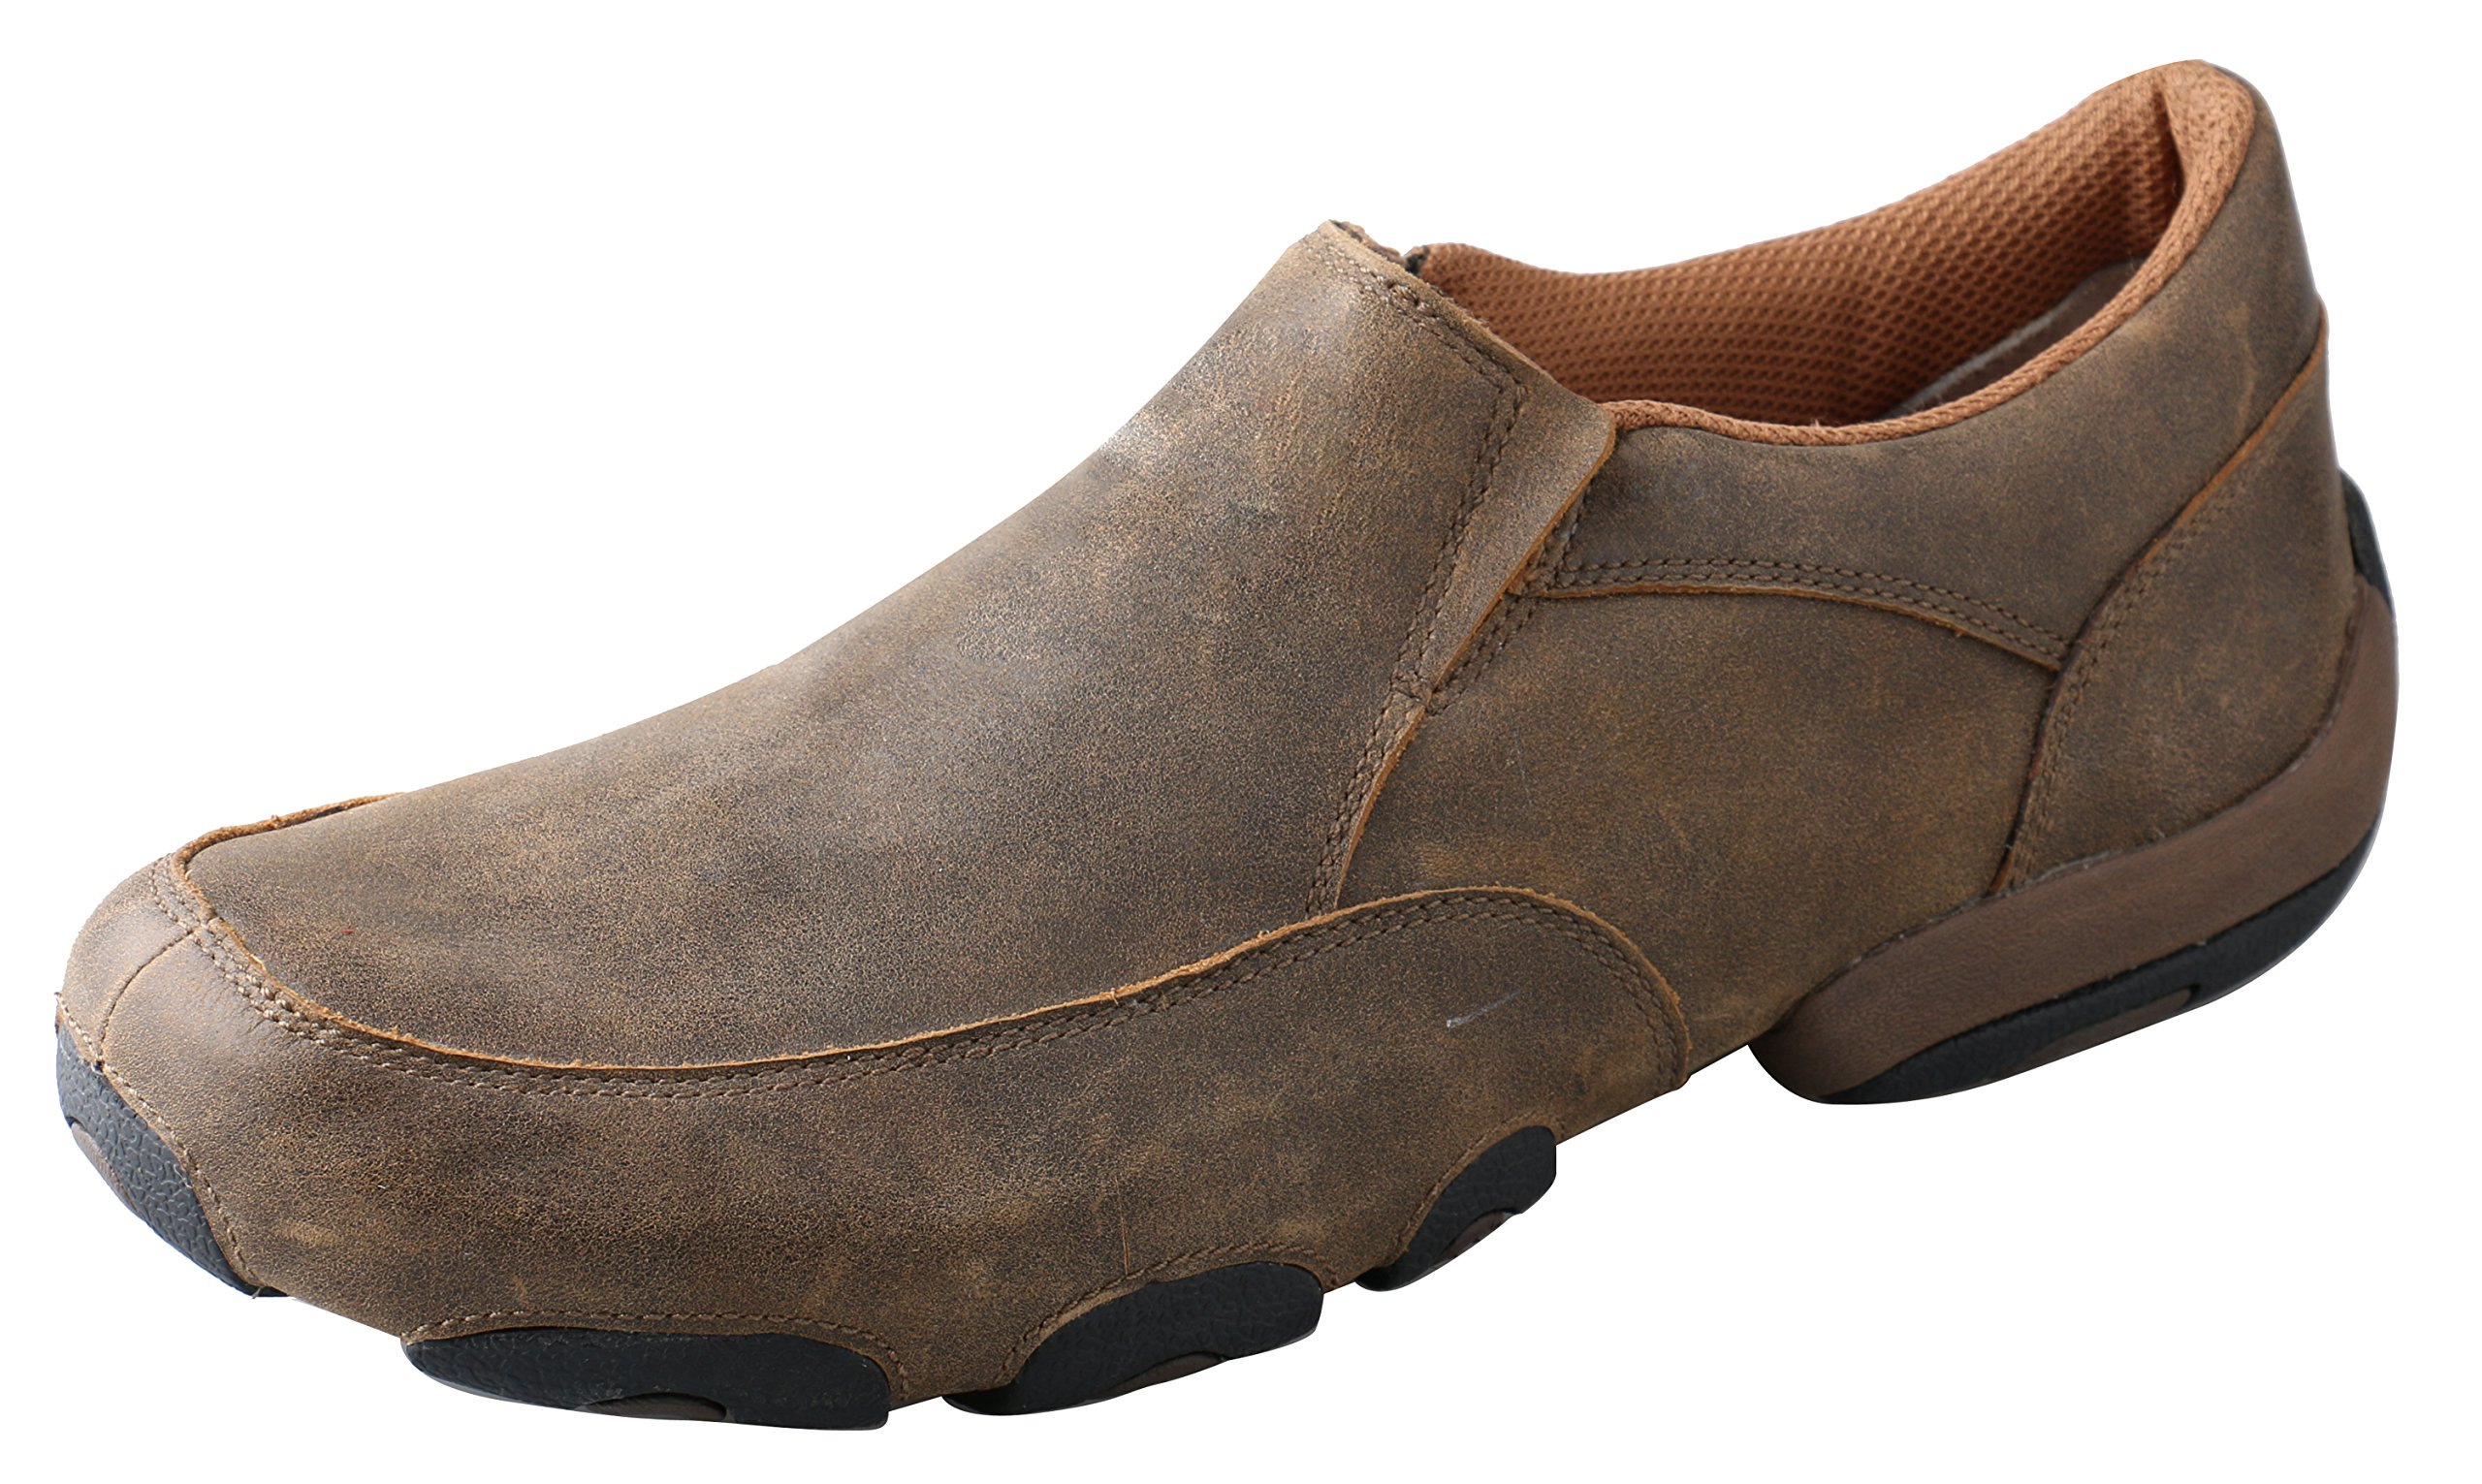 Twisted X Men's Slip-On Driving Moccasins Bomber/Bomber - Casual Walking Leather Footwear 14EE US